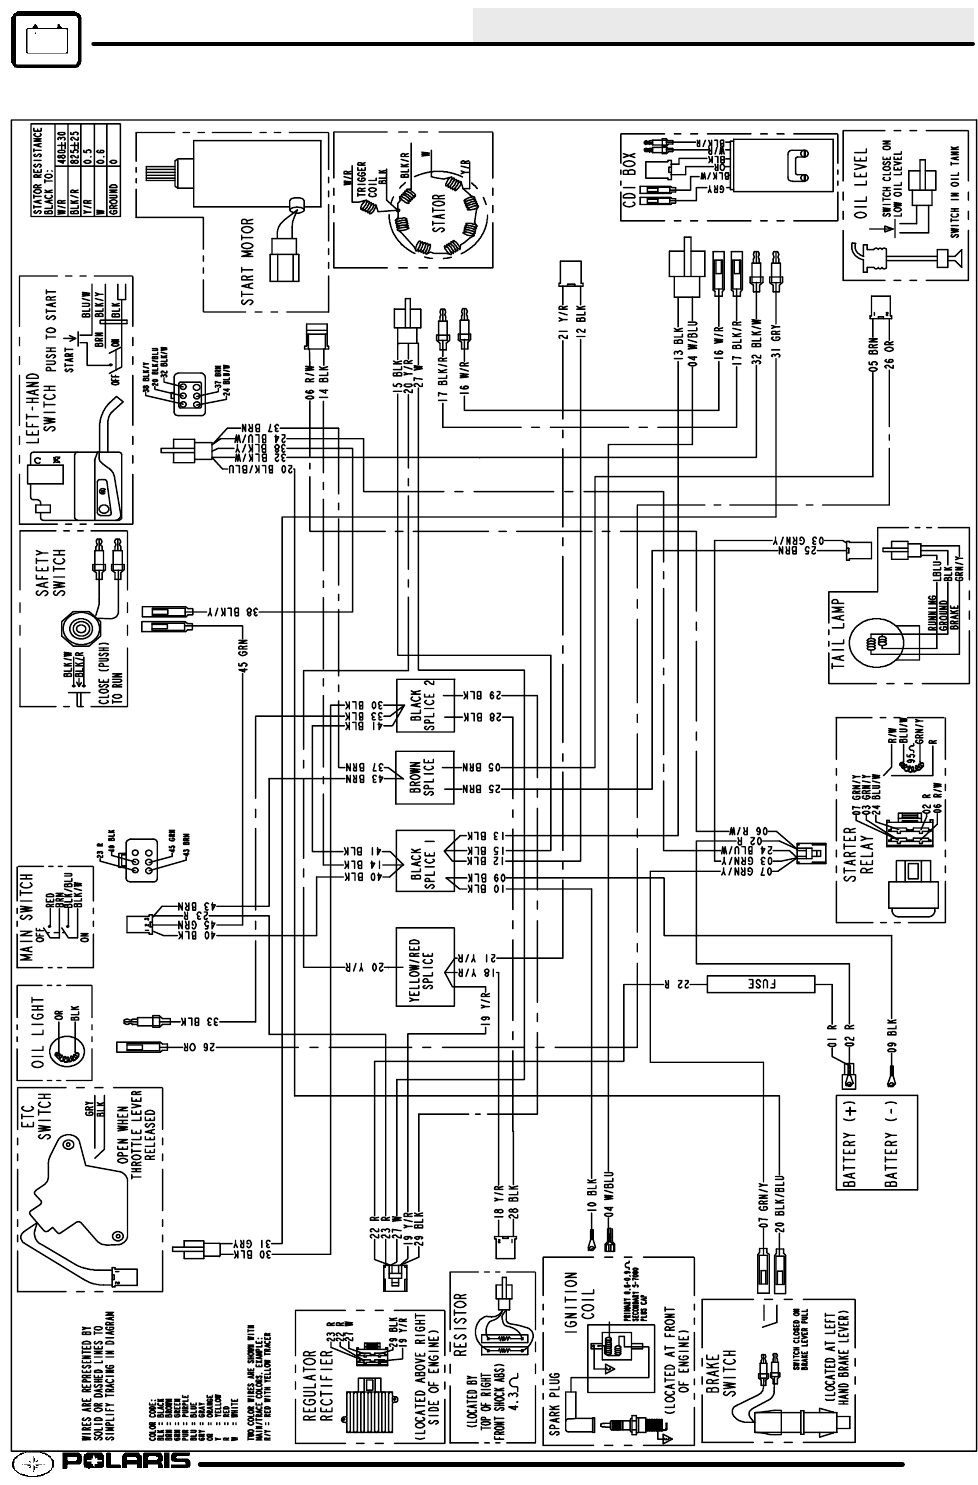 2009 polaris sportsman 550 wiring diagram